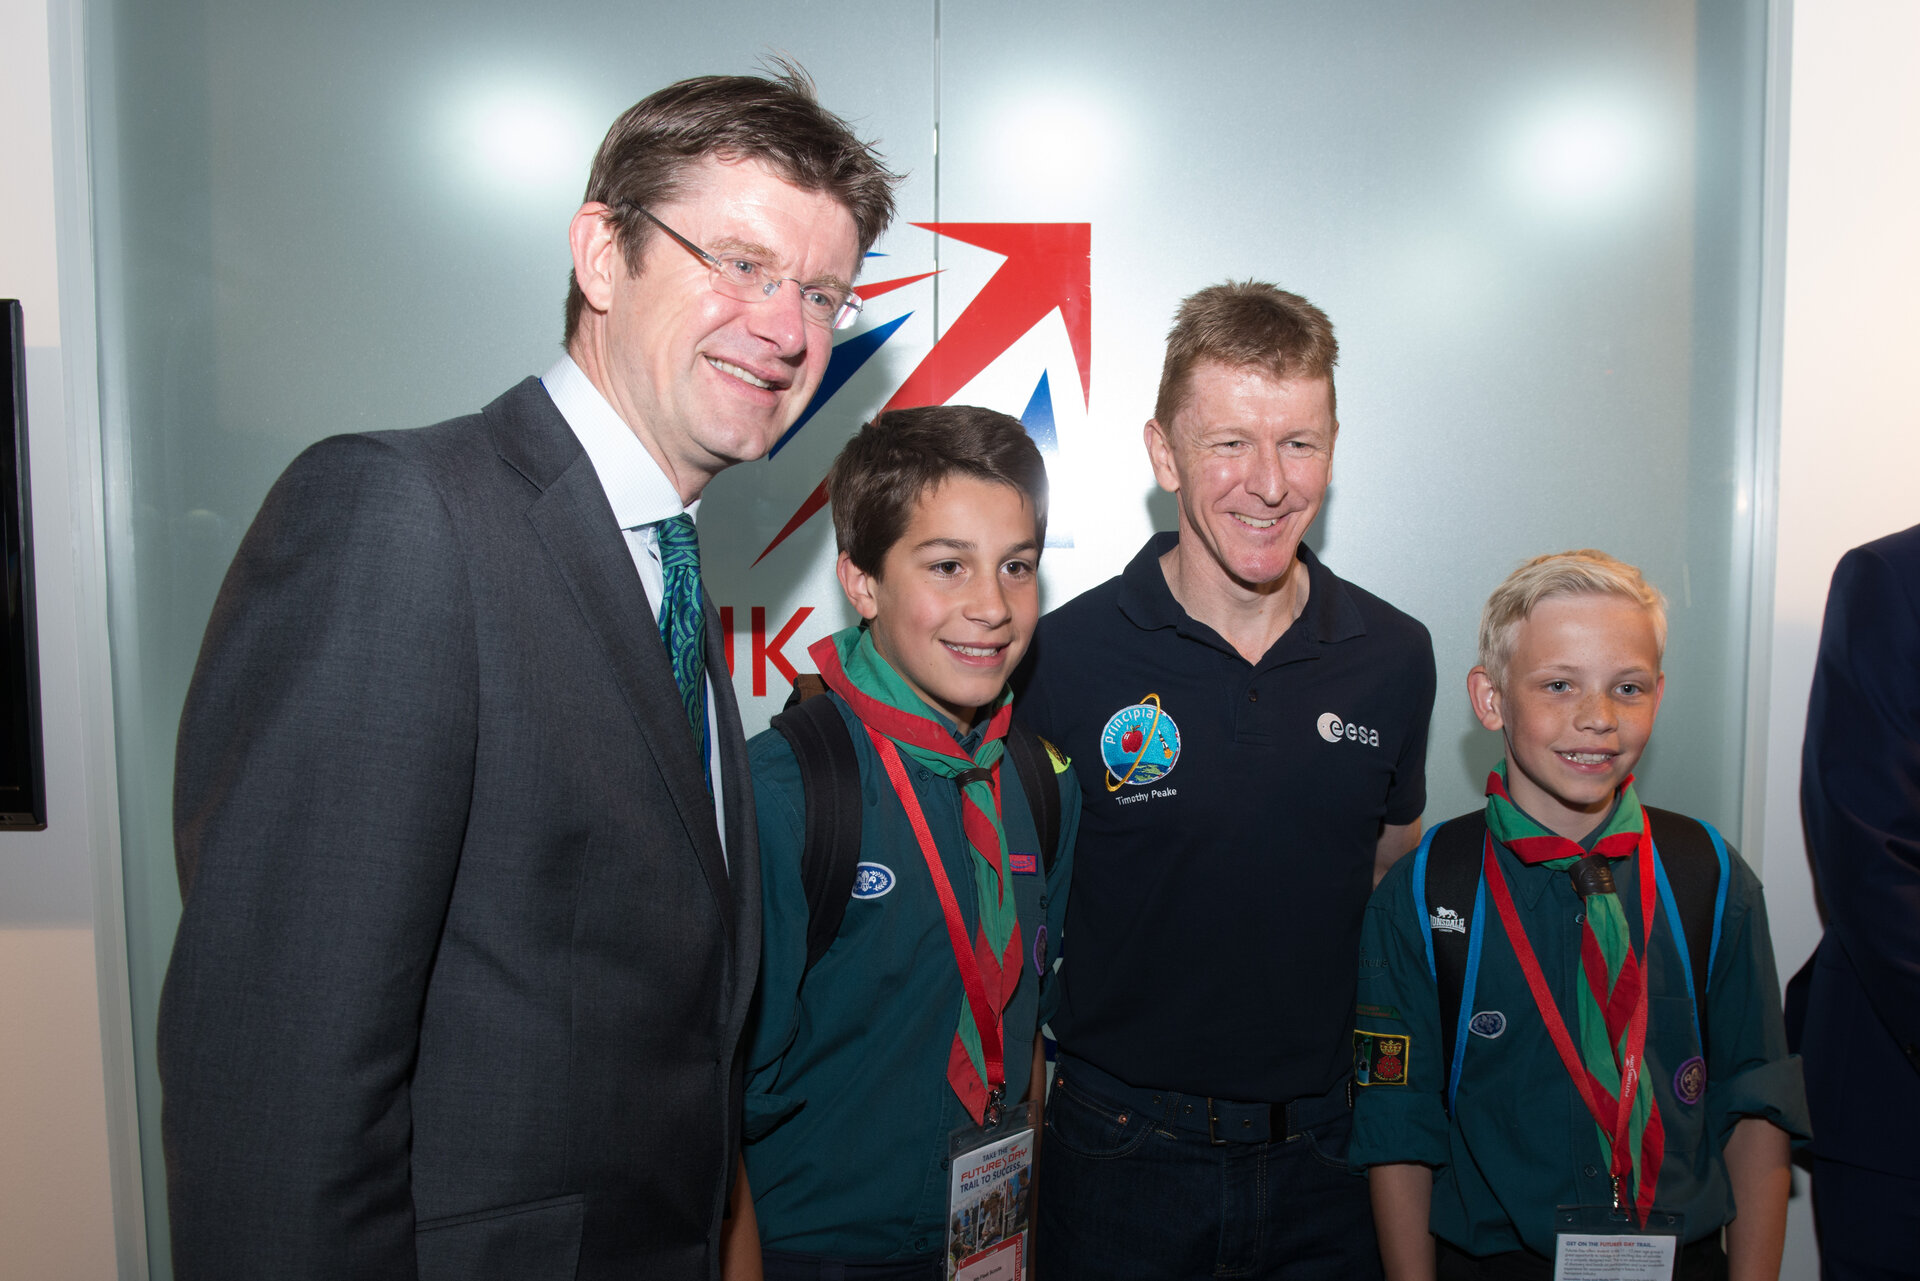 Tim Peake, Greg Clark at Futures Day